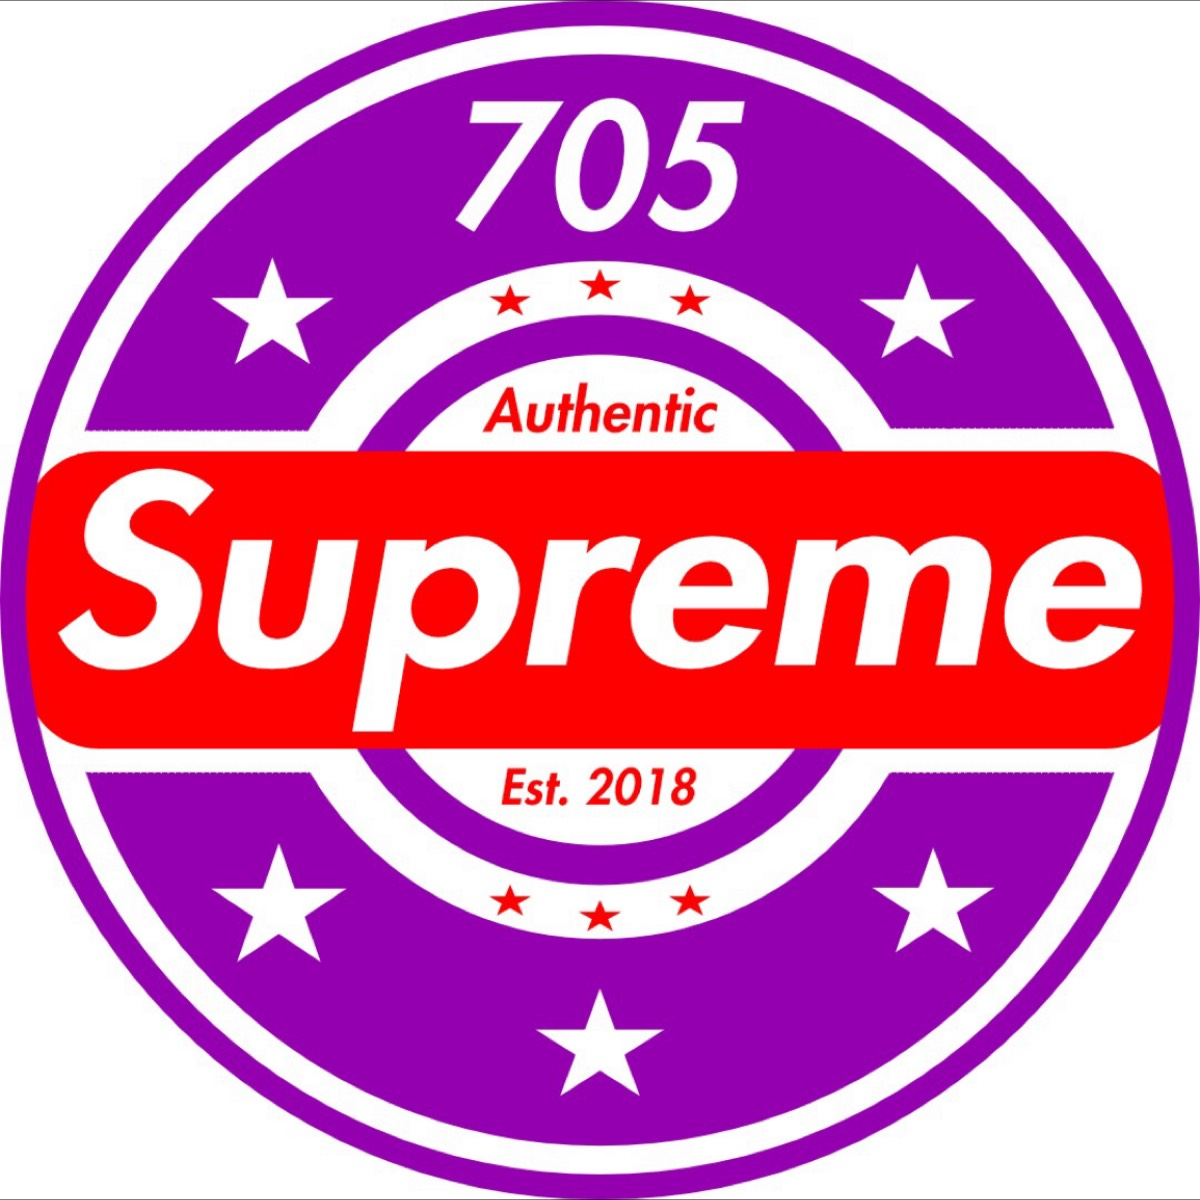 Bump profile picture for @705supreme